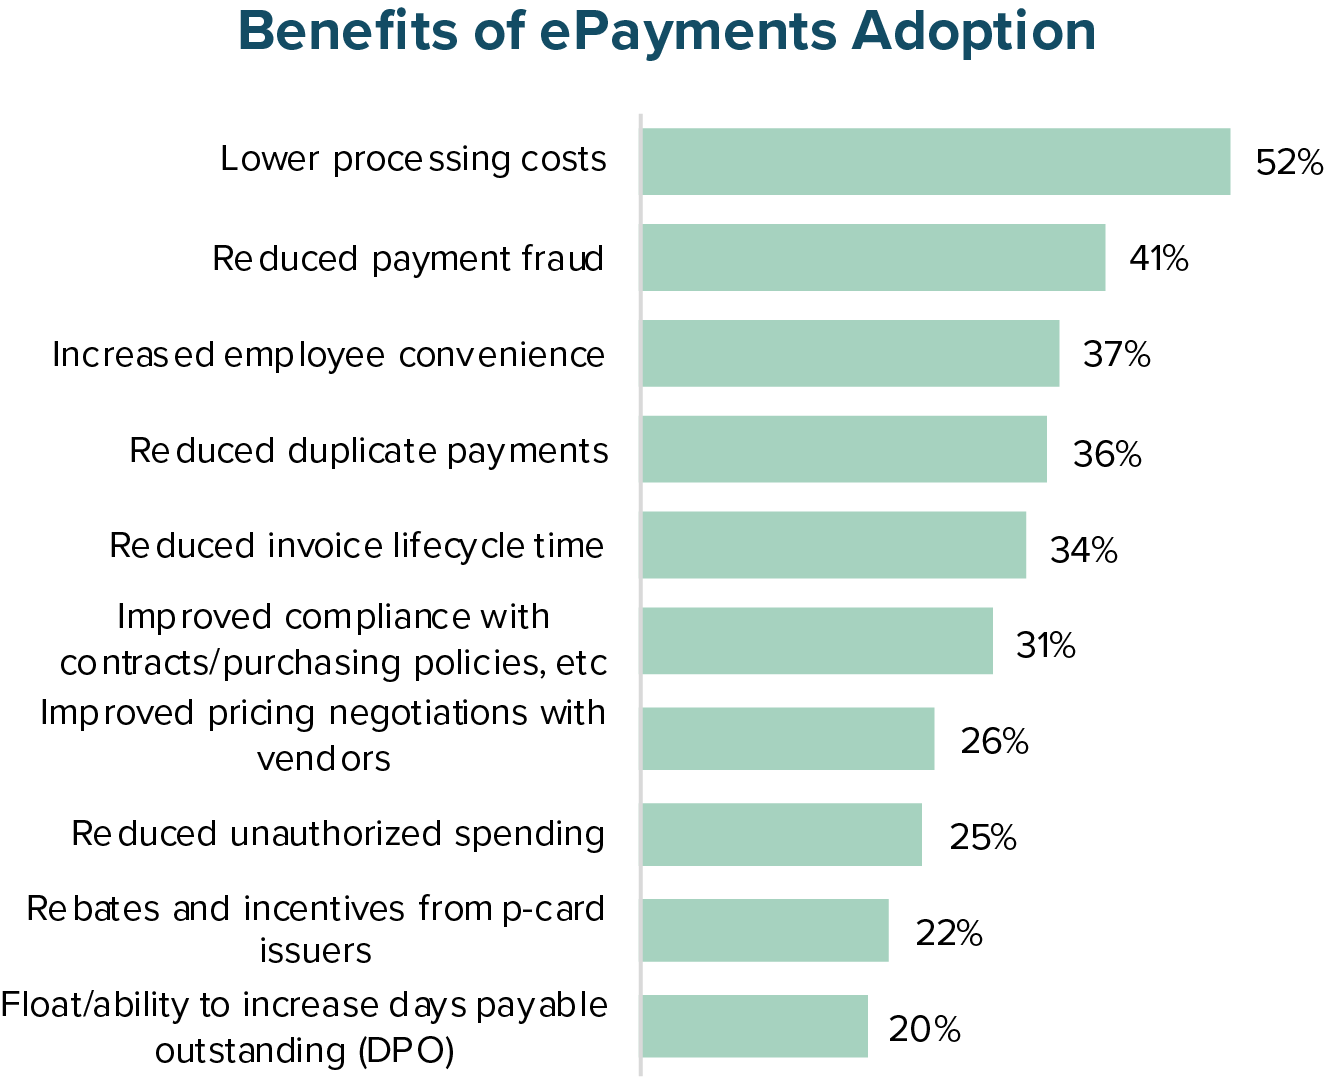 Benefits of ePayments Adoption